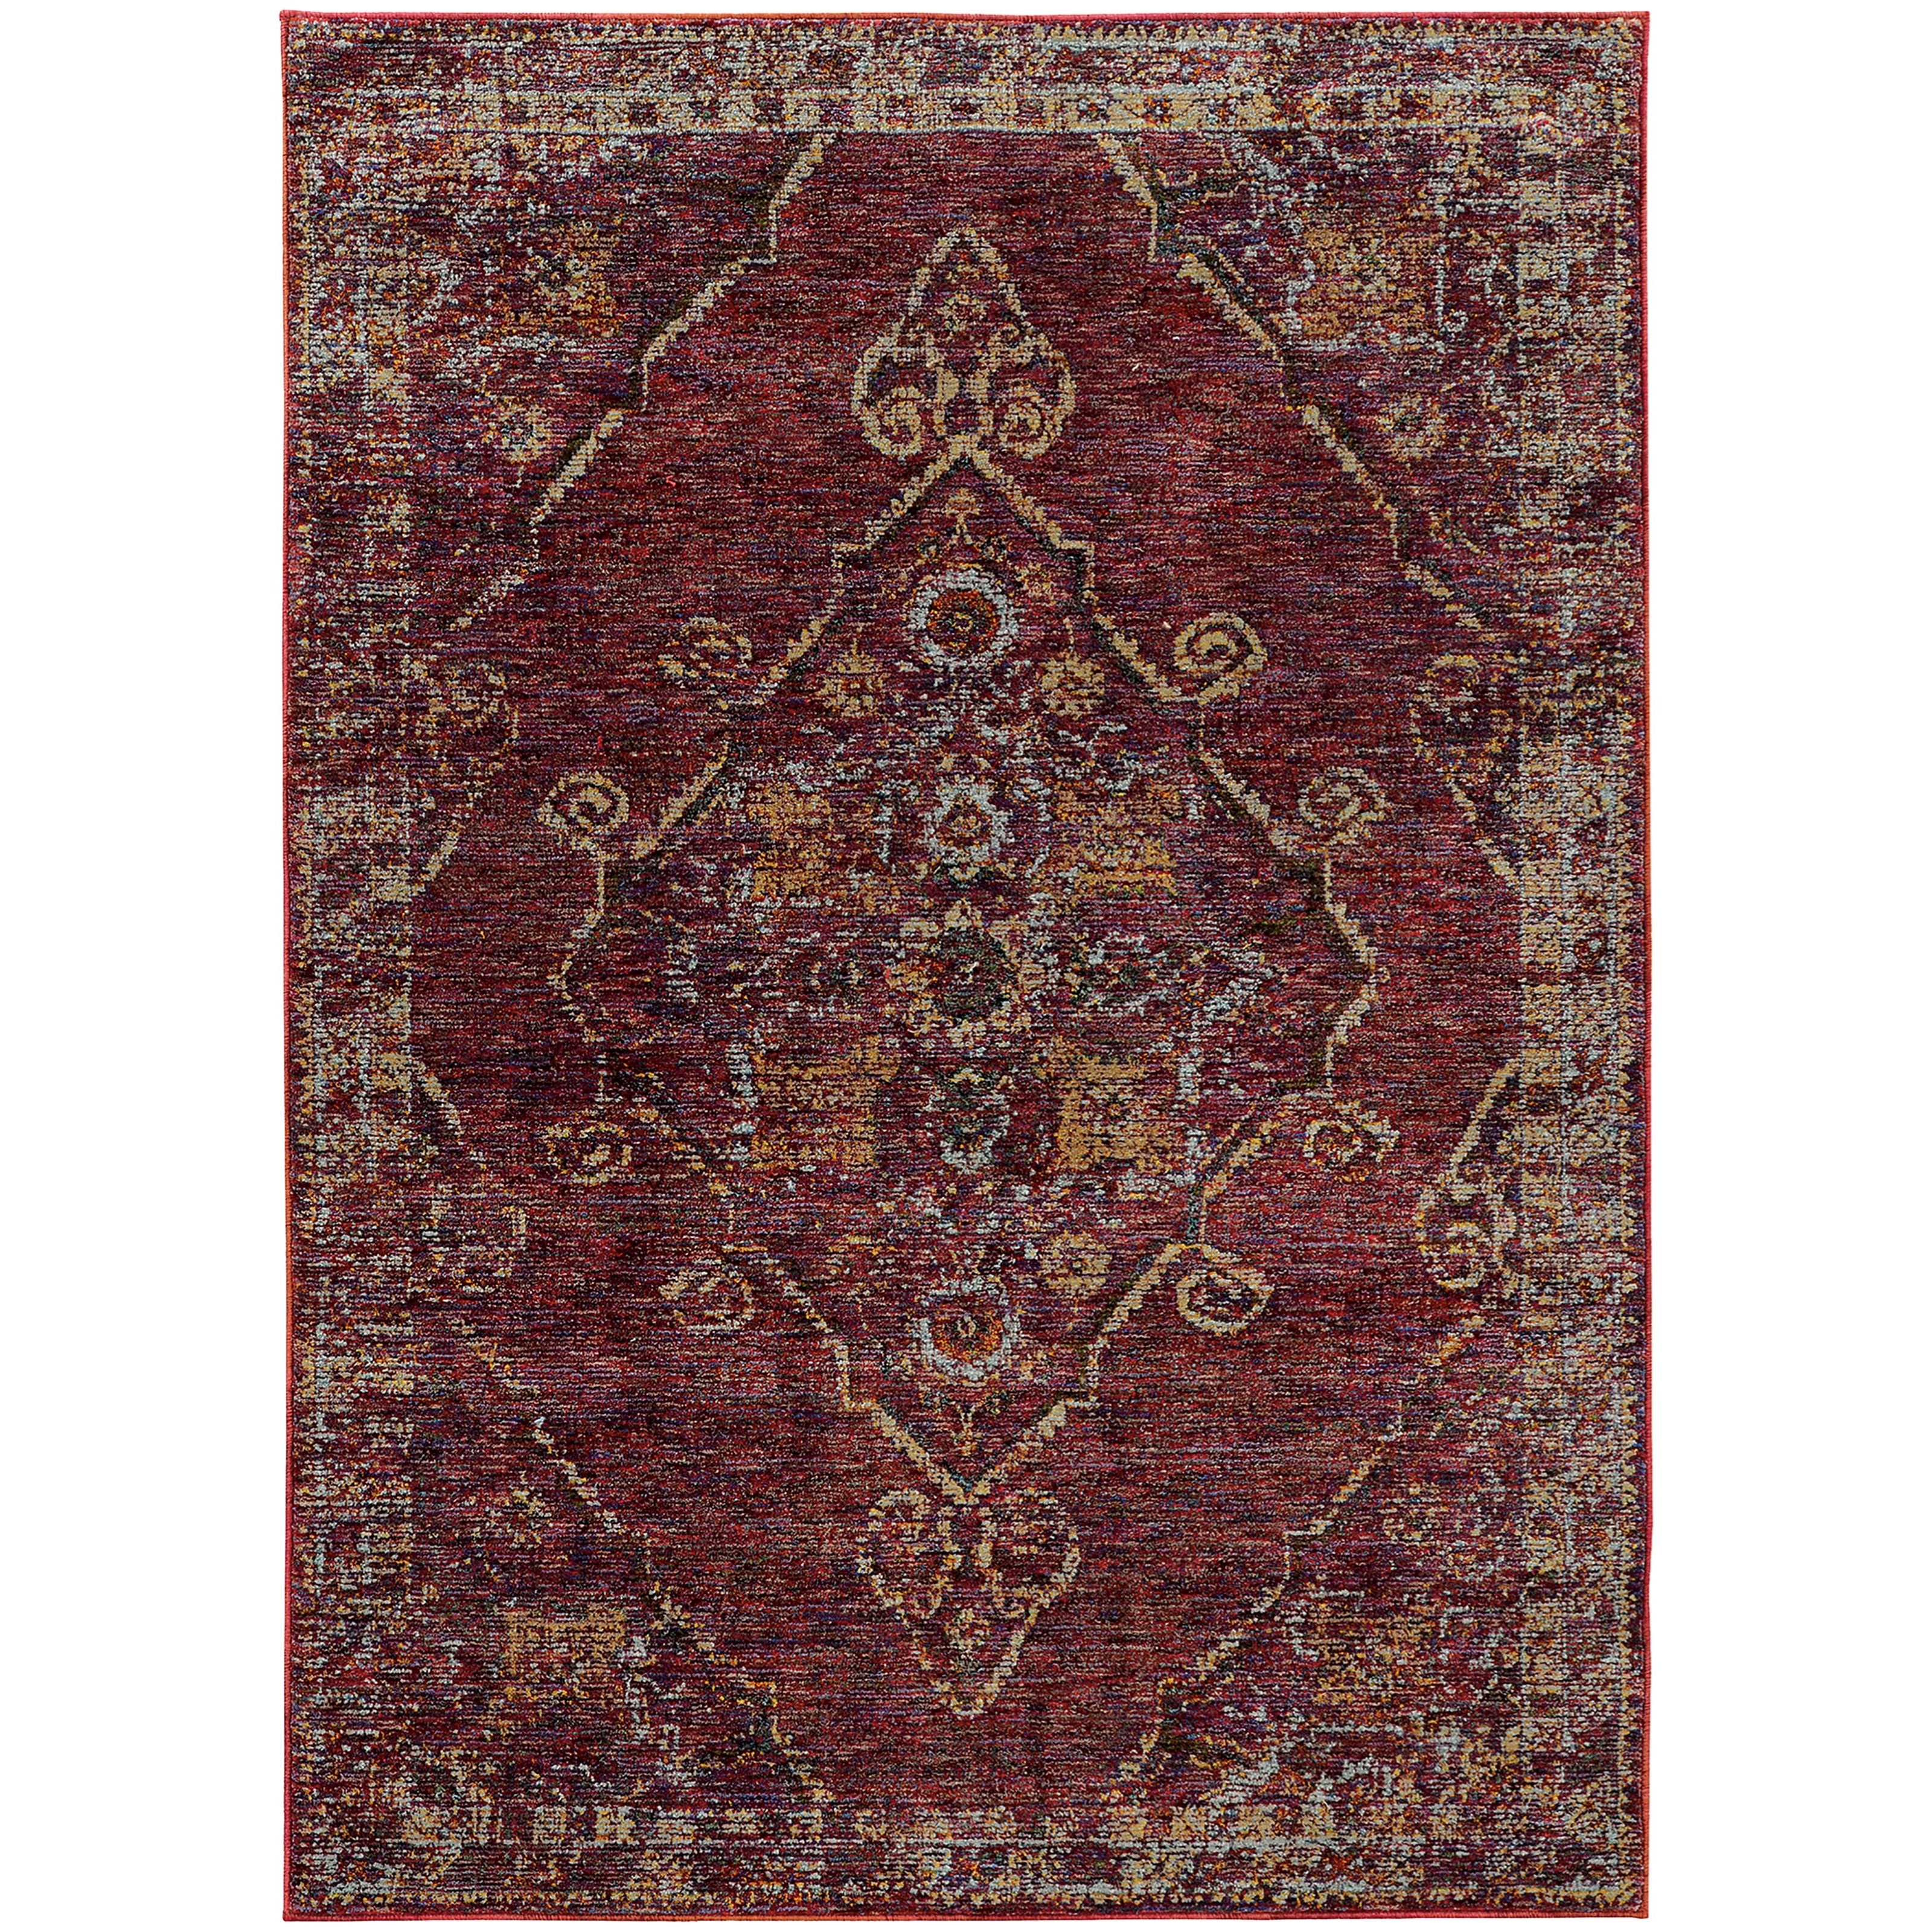 """Andorra 8' 6"""" X 11' 7"""" Casual Red/ Gold Rectangle Ru by Oriental Weavers at Steger's Furniture"""